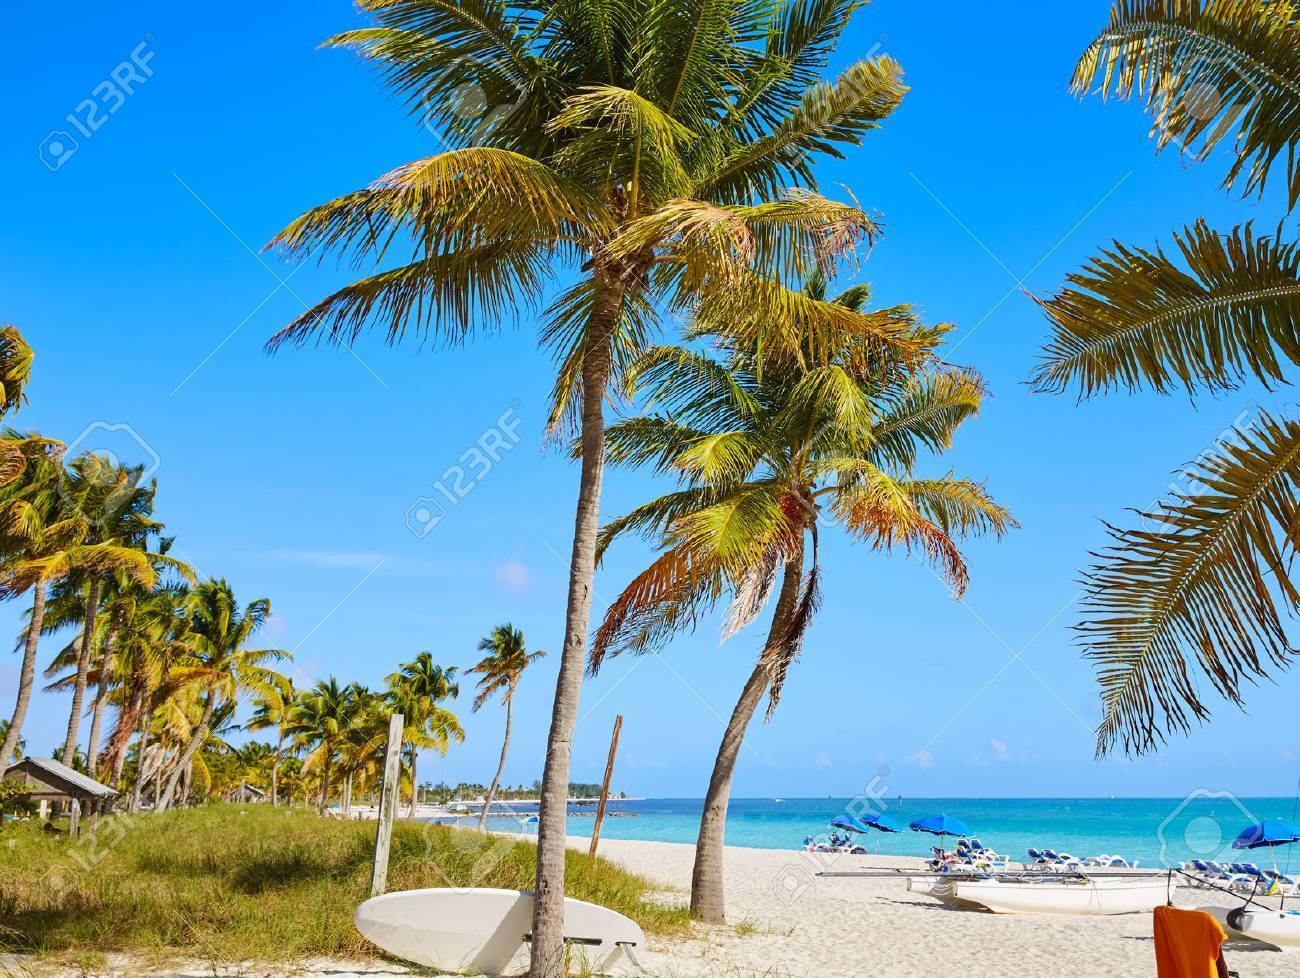 Key west florida Smathers beach palm trees in USA - 60127713